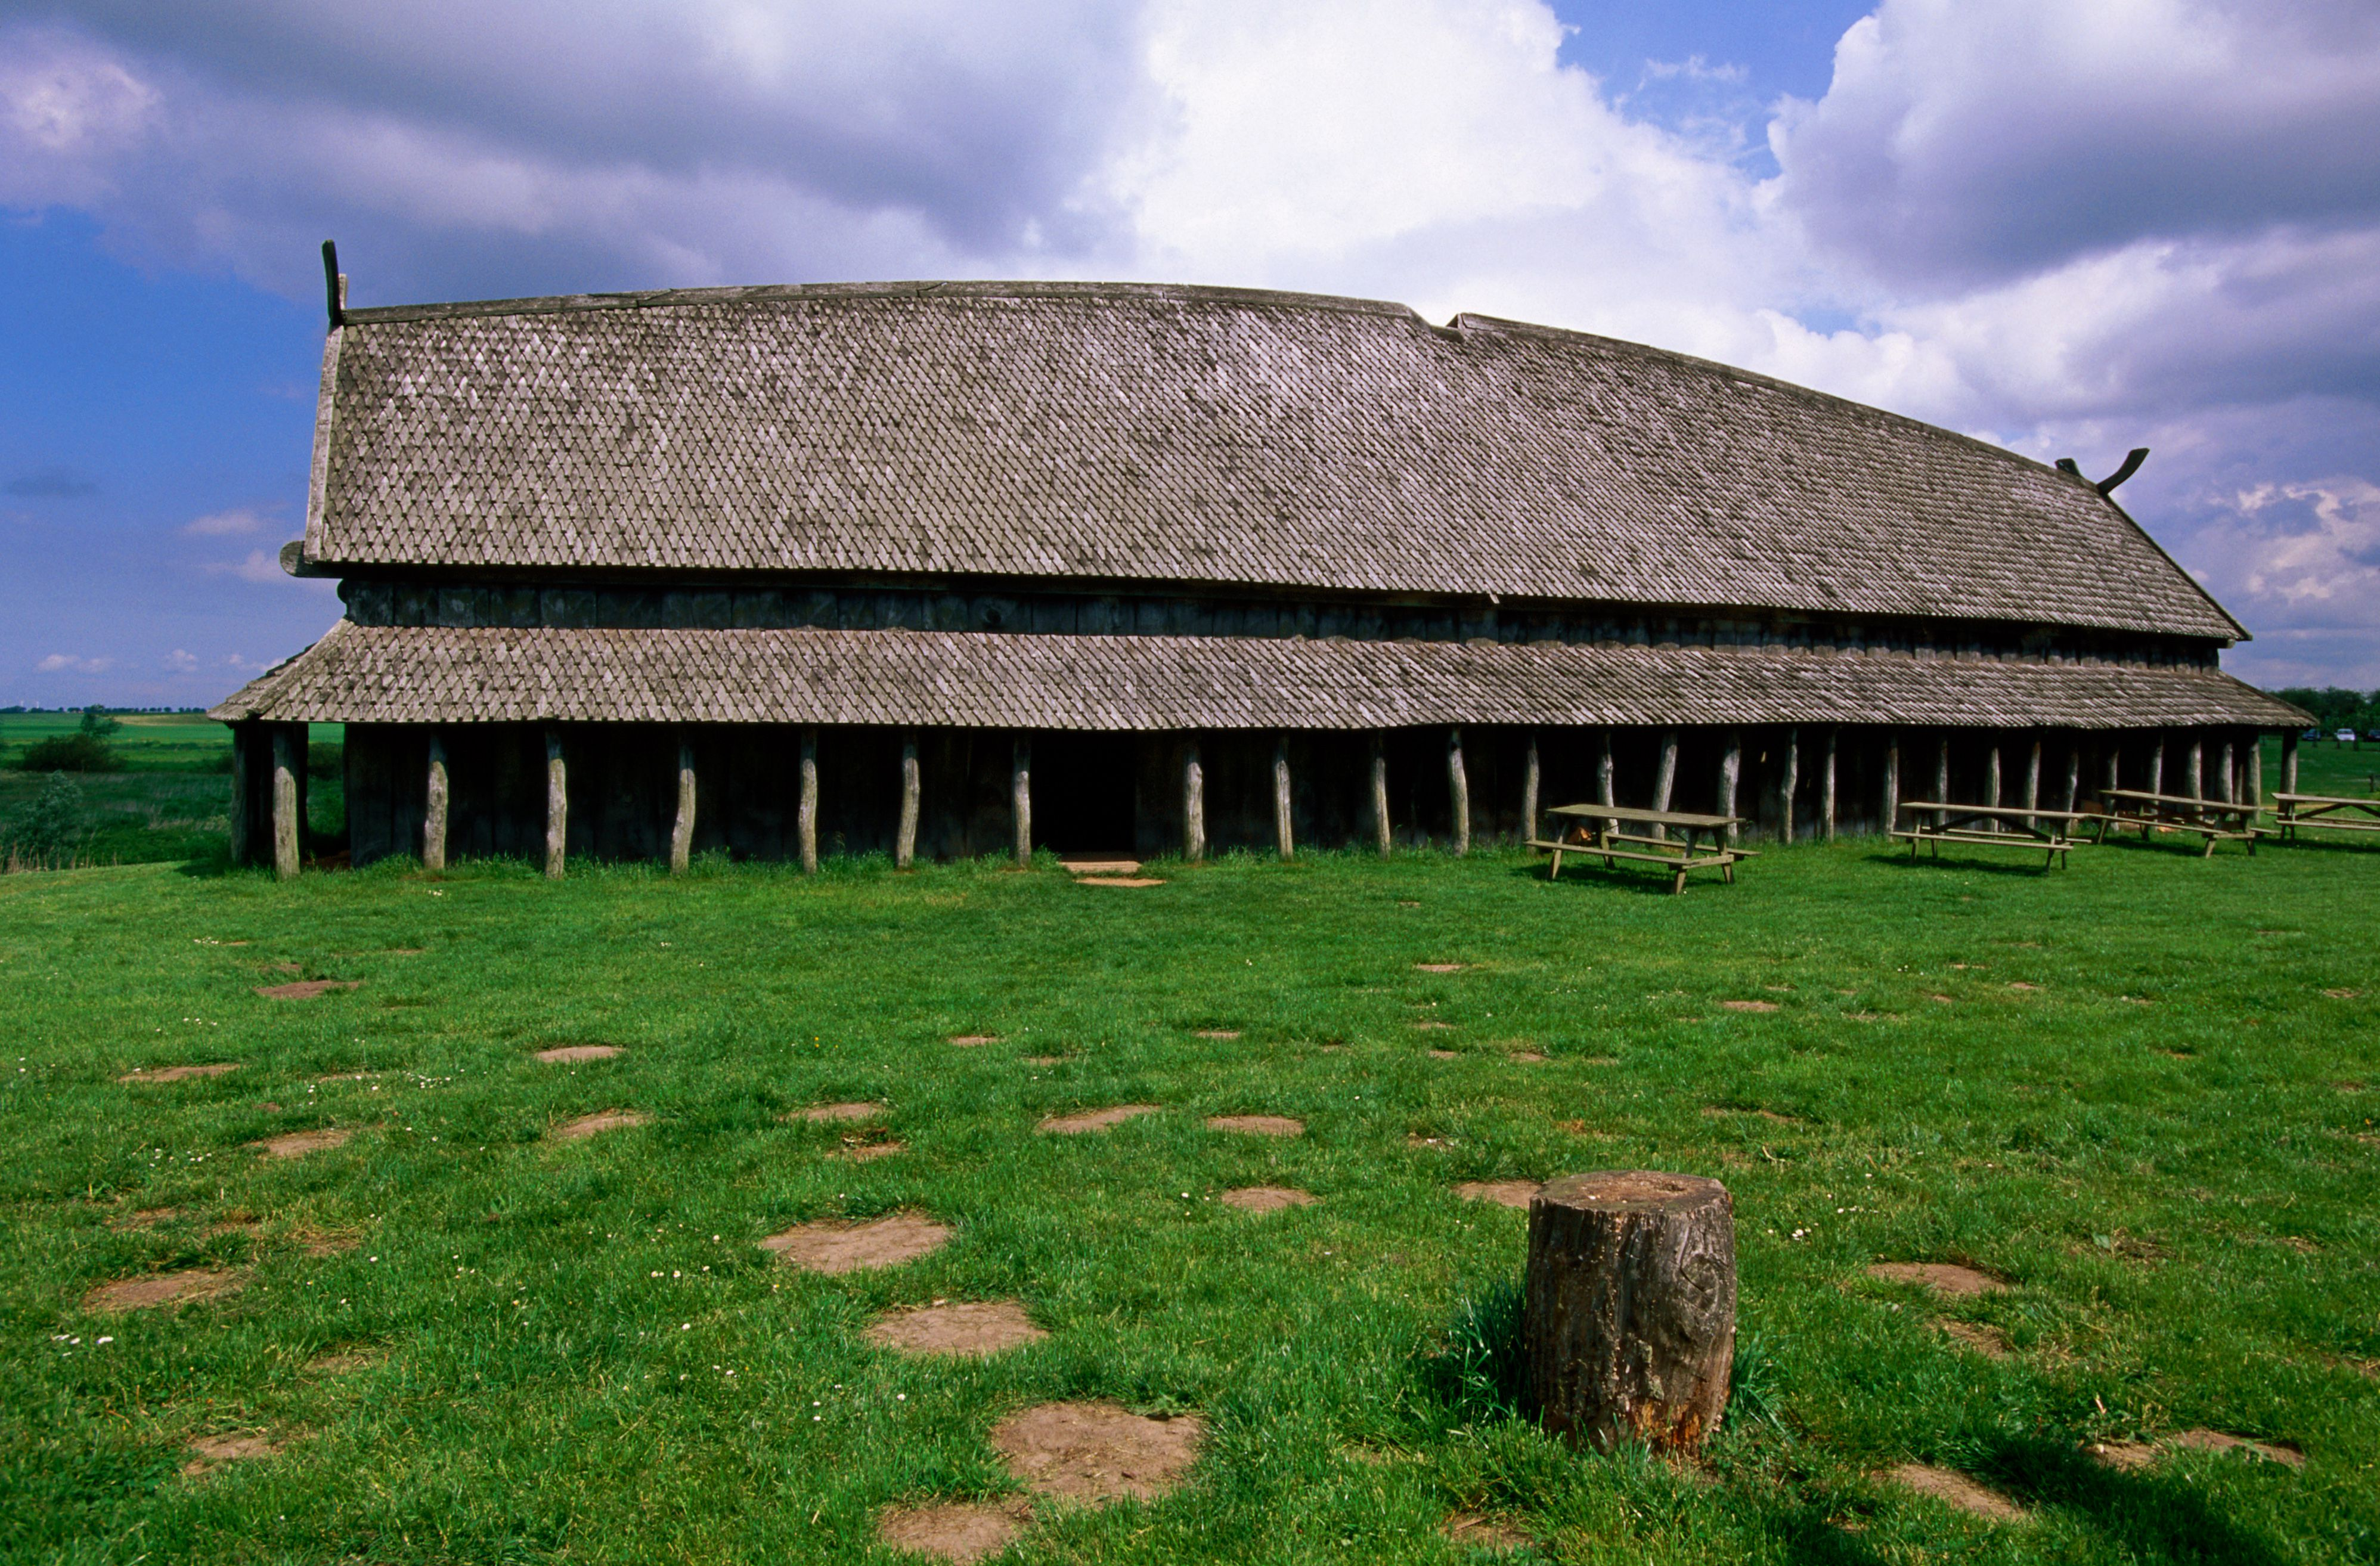 Longhouse in stave style at Viking Ring Fortress (960), Trelleborg, West Zealand, Denmark, Europe